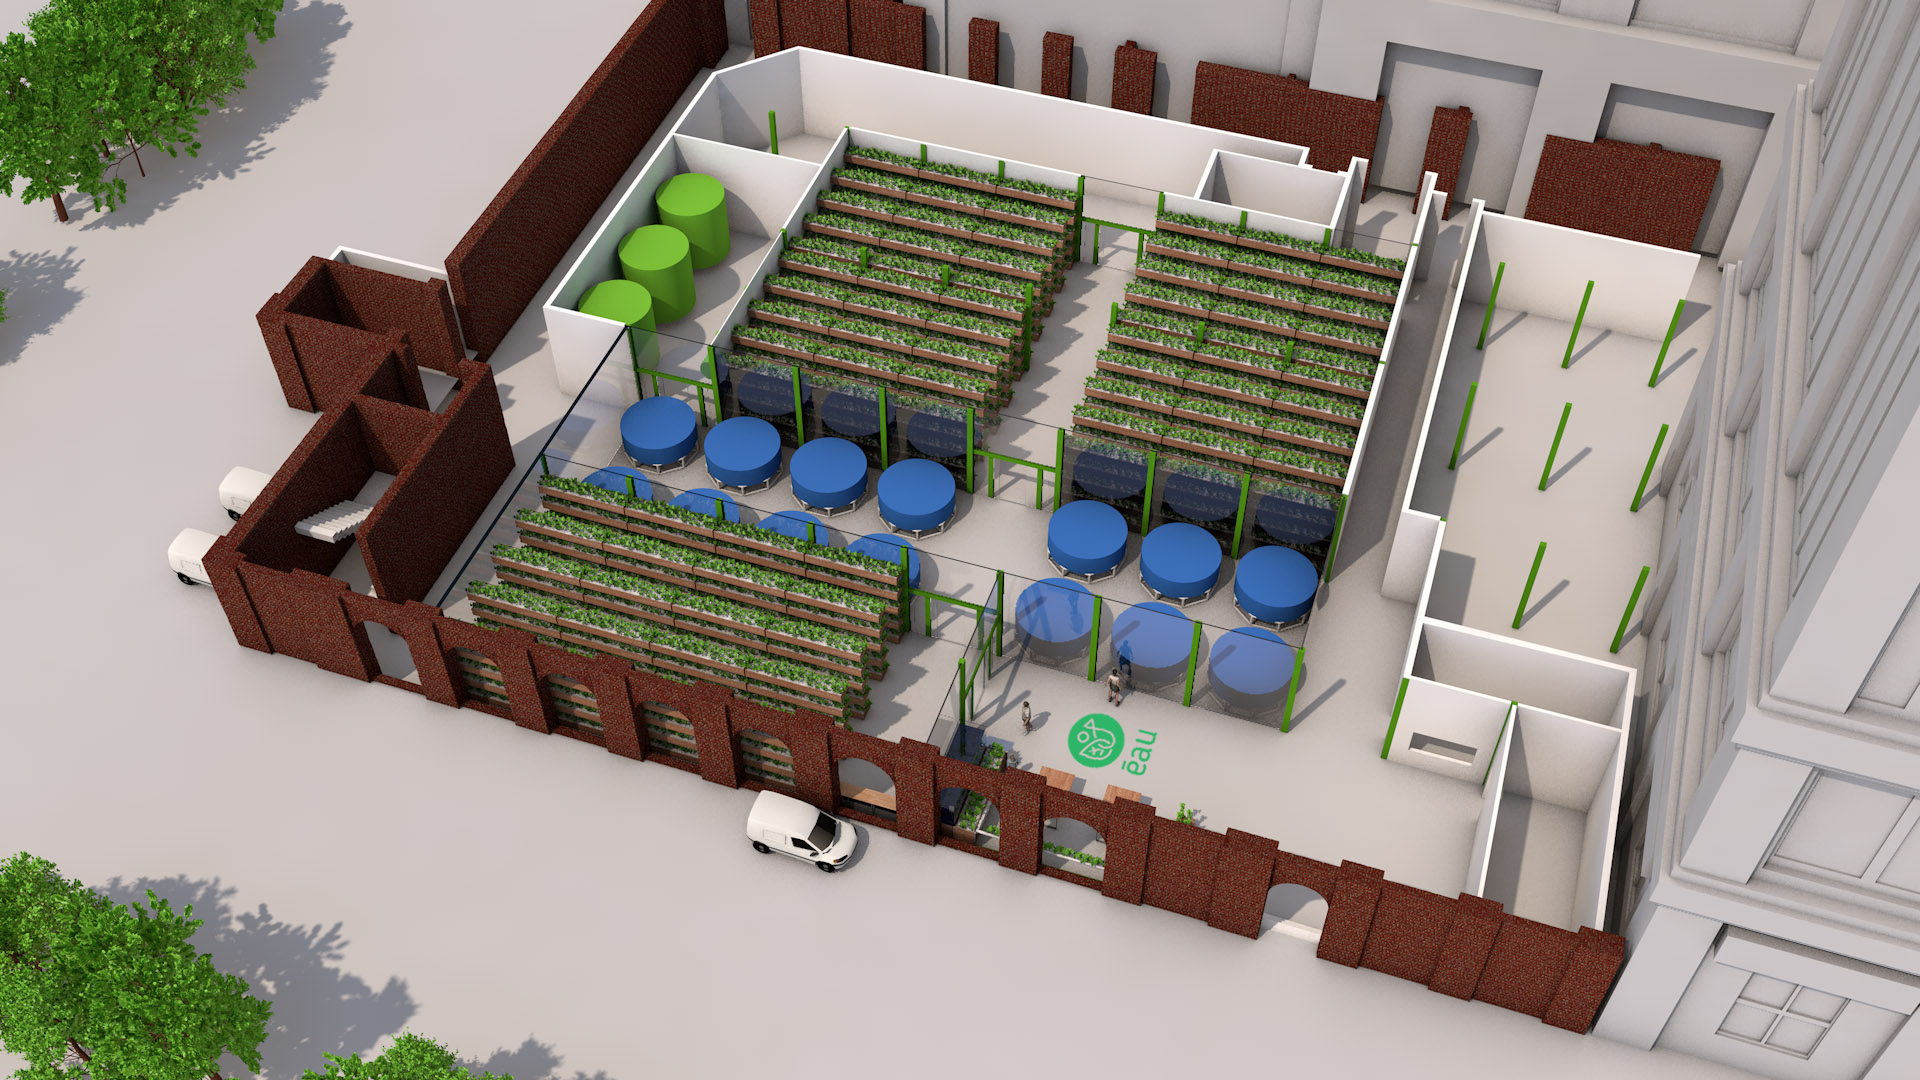 We develop aquaponic farms that produce fresh, healthy and local food all year round, regardless of weather conditions